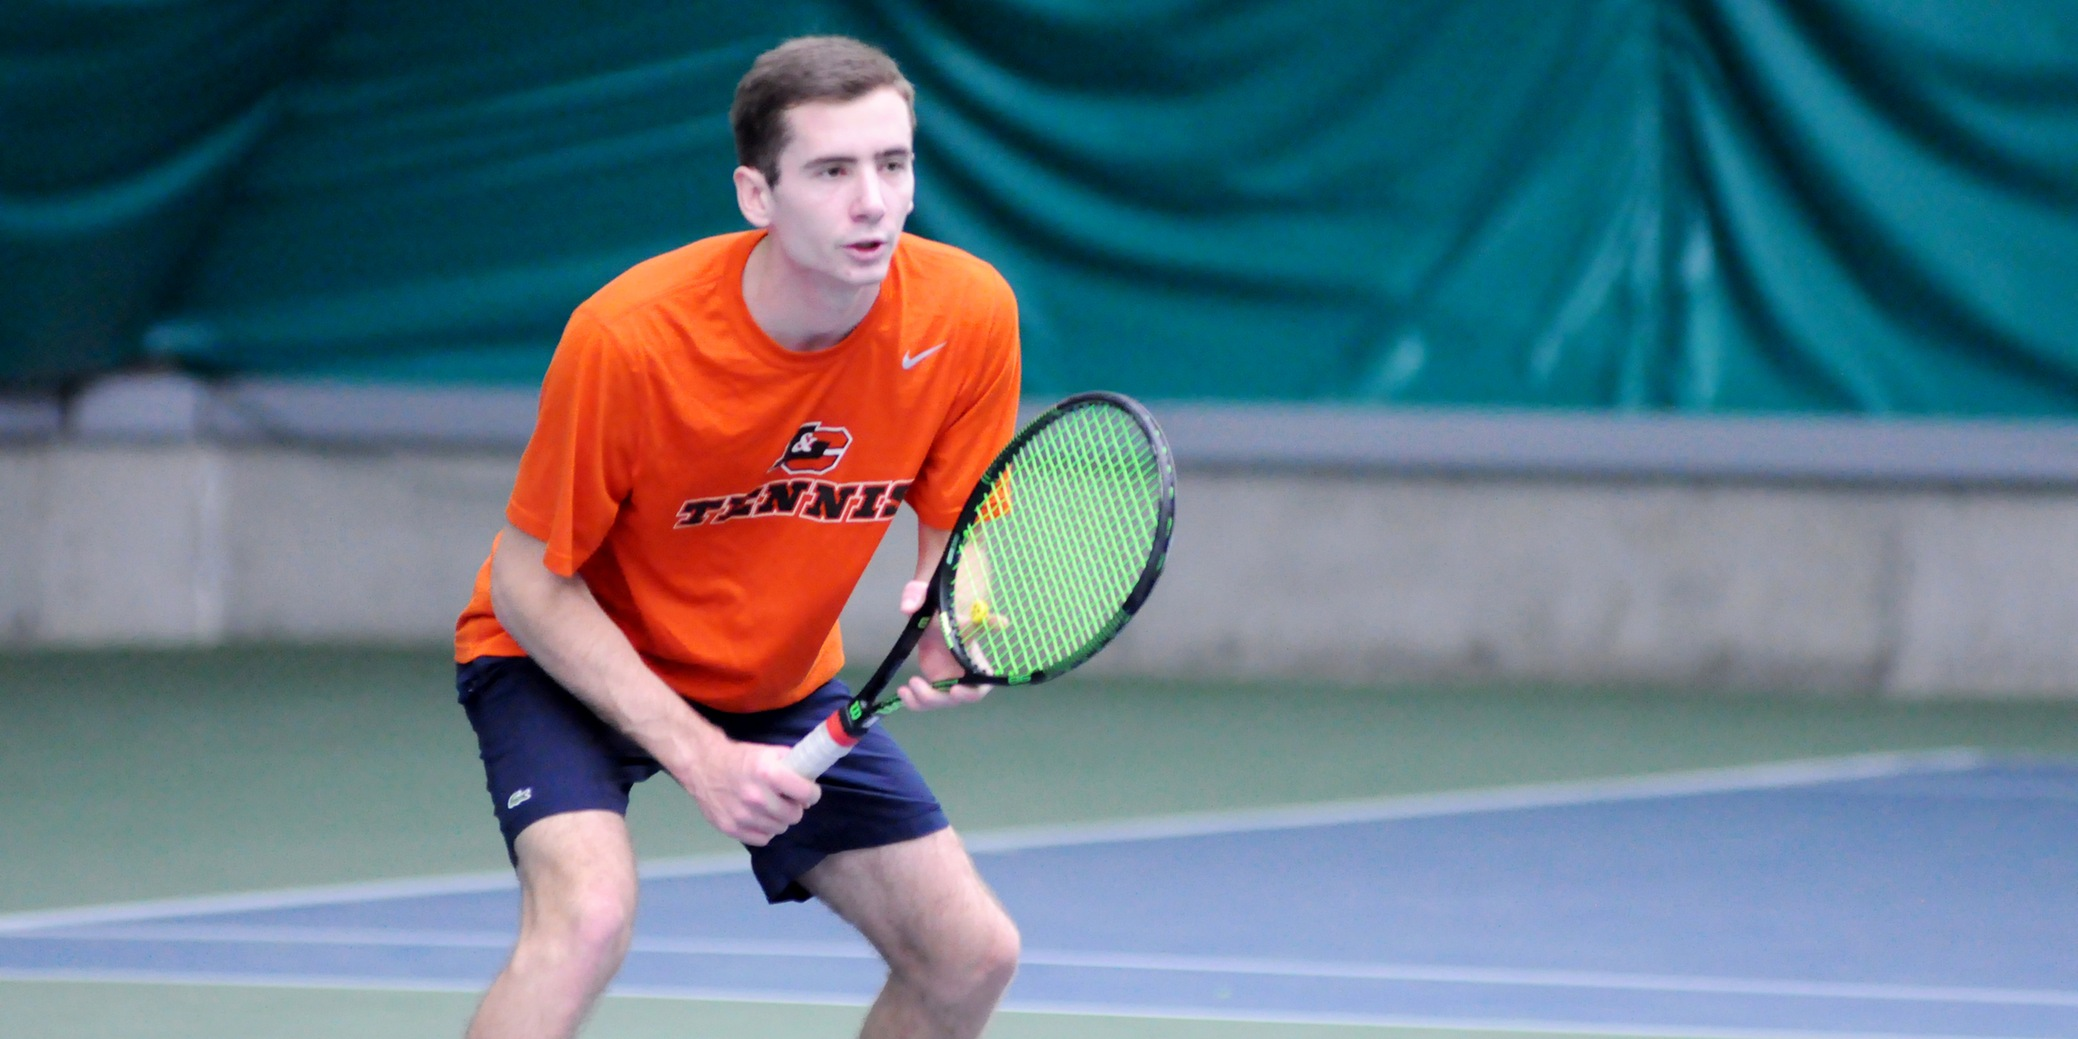 Powell wins two matches to get Lewis & Clark's points in loss to Kenyon